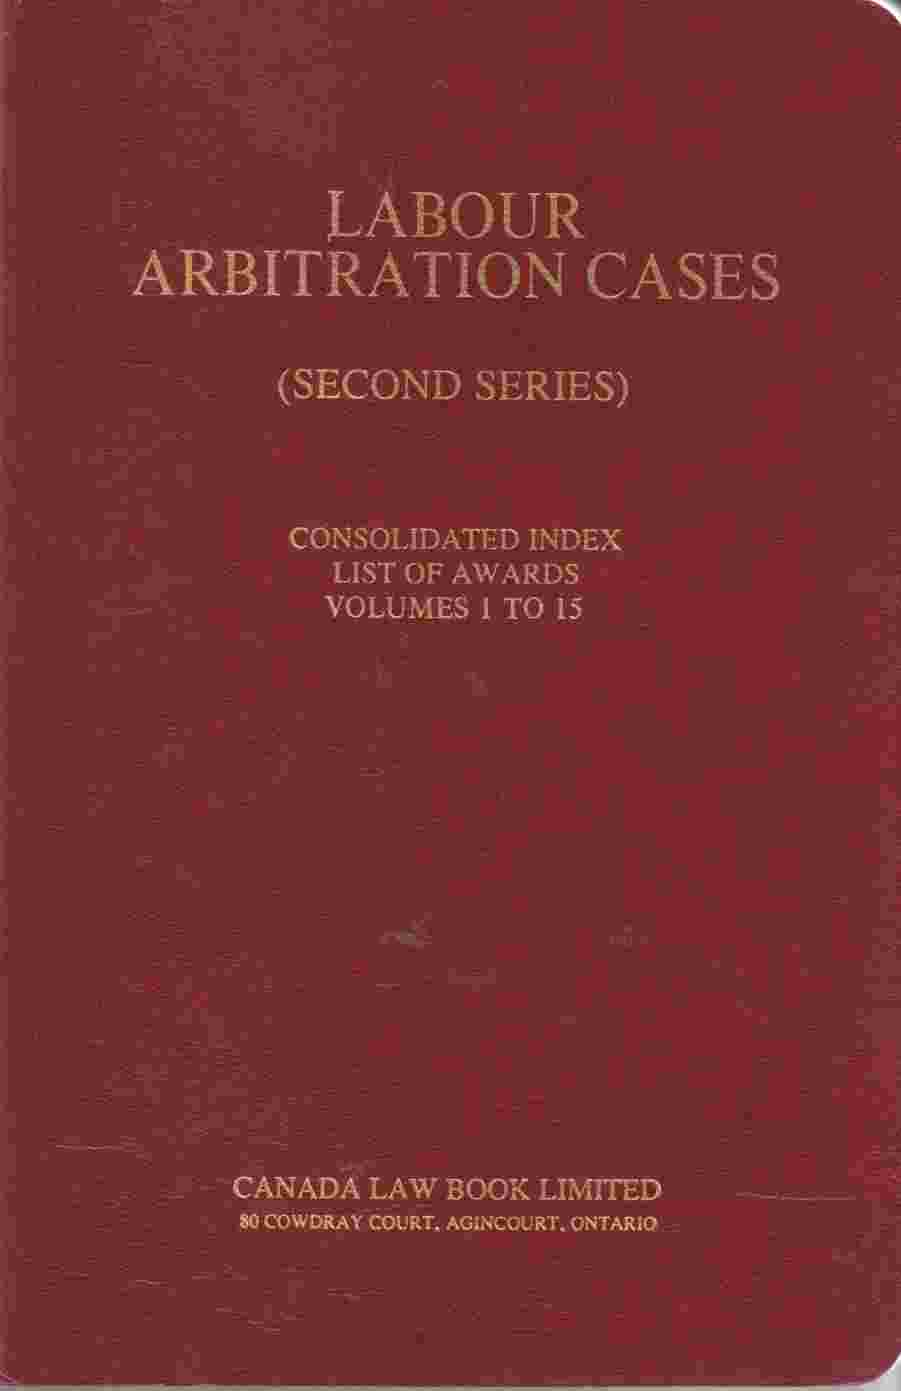 Image for Labour Arbitration Cases (Second Series)  Consolidated Index and List of Awards Volumes 1 to 15